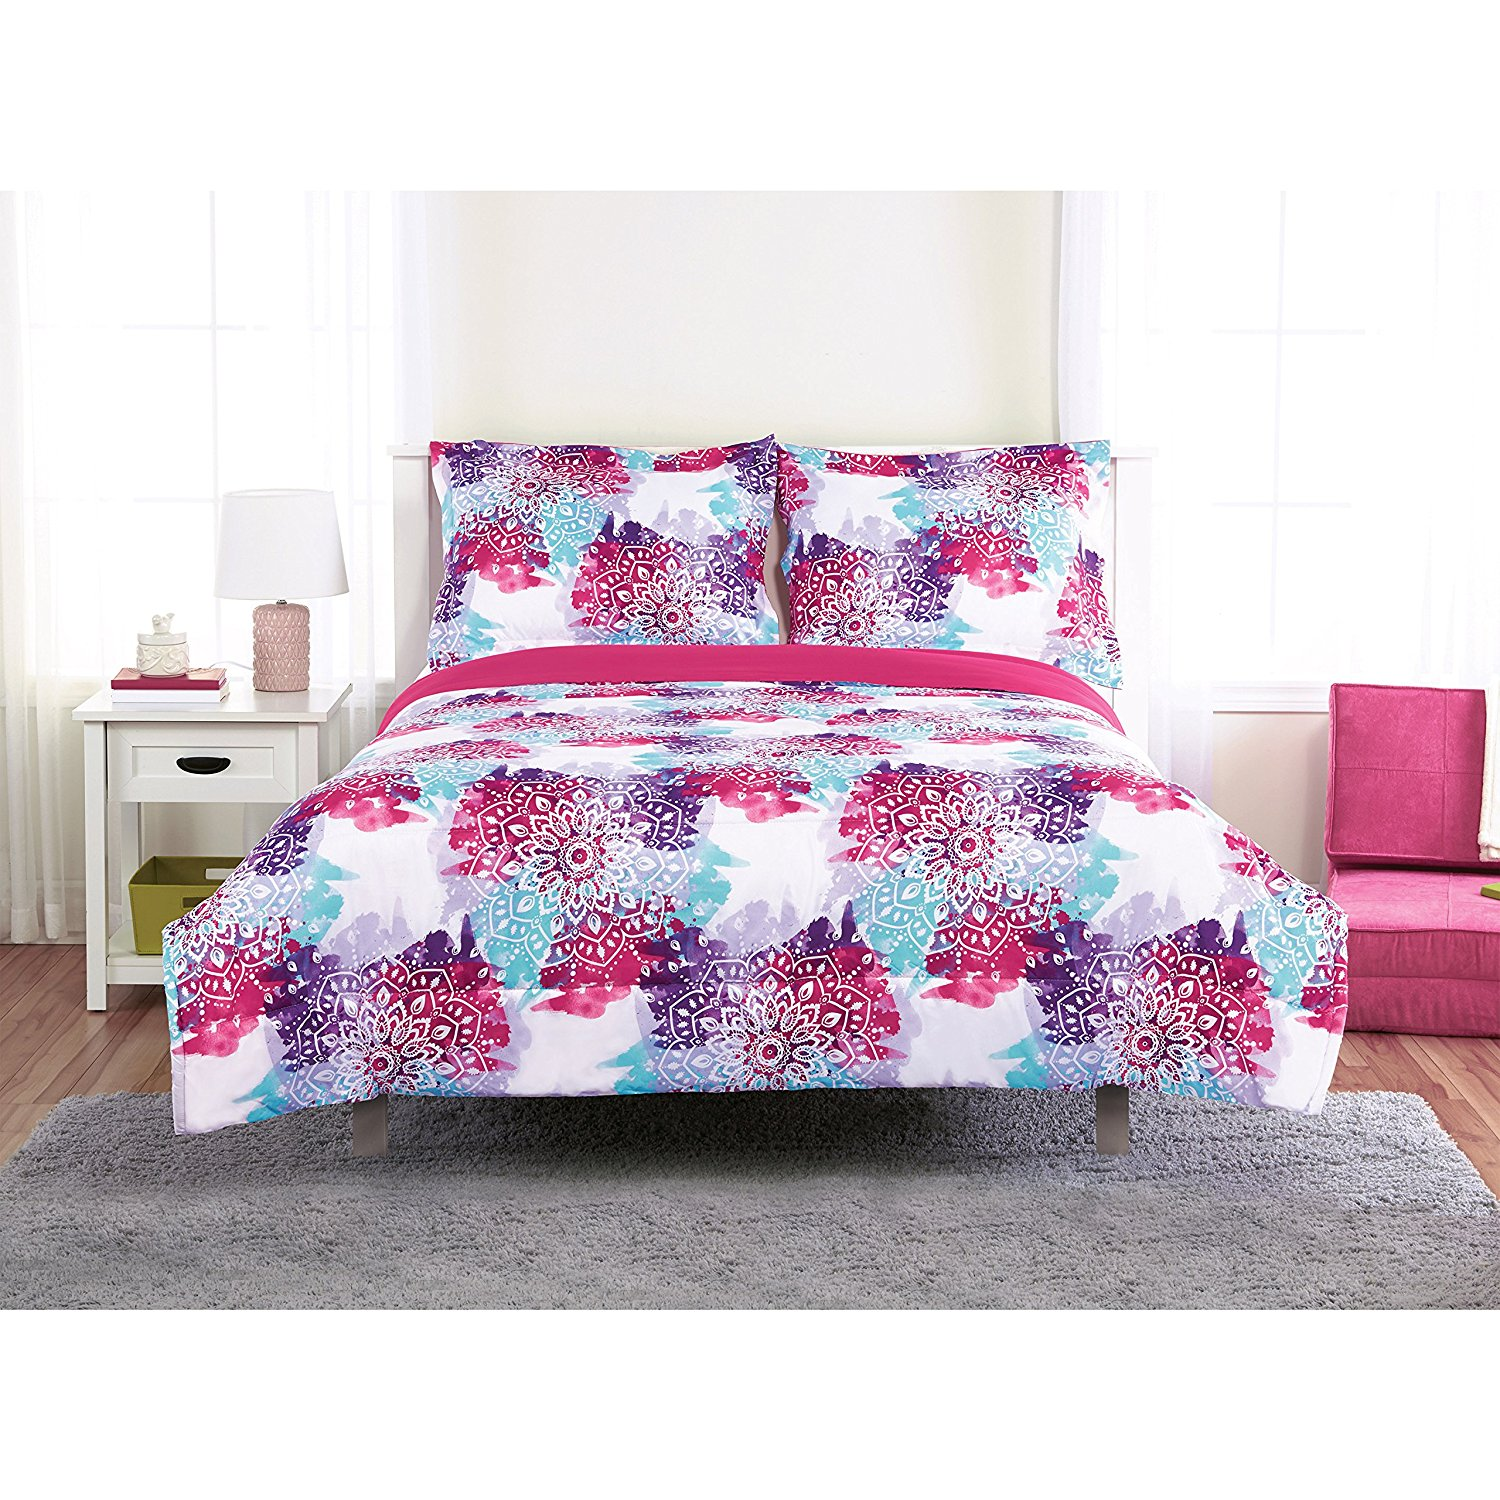 Unkk 3 Piece Girls White Blue Purple Pink Mandala Themed Comforter Full Size Set, Vibrant Boho Chic Medallion Motif Bedding, Bright Intricate Bohemian Floral Flower Pattern, Polyester